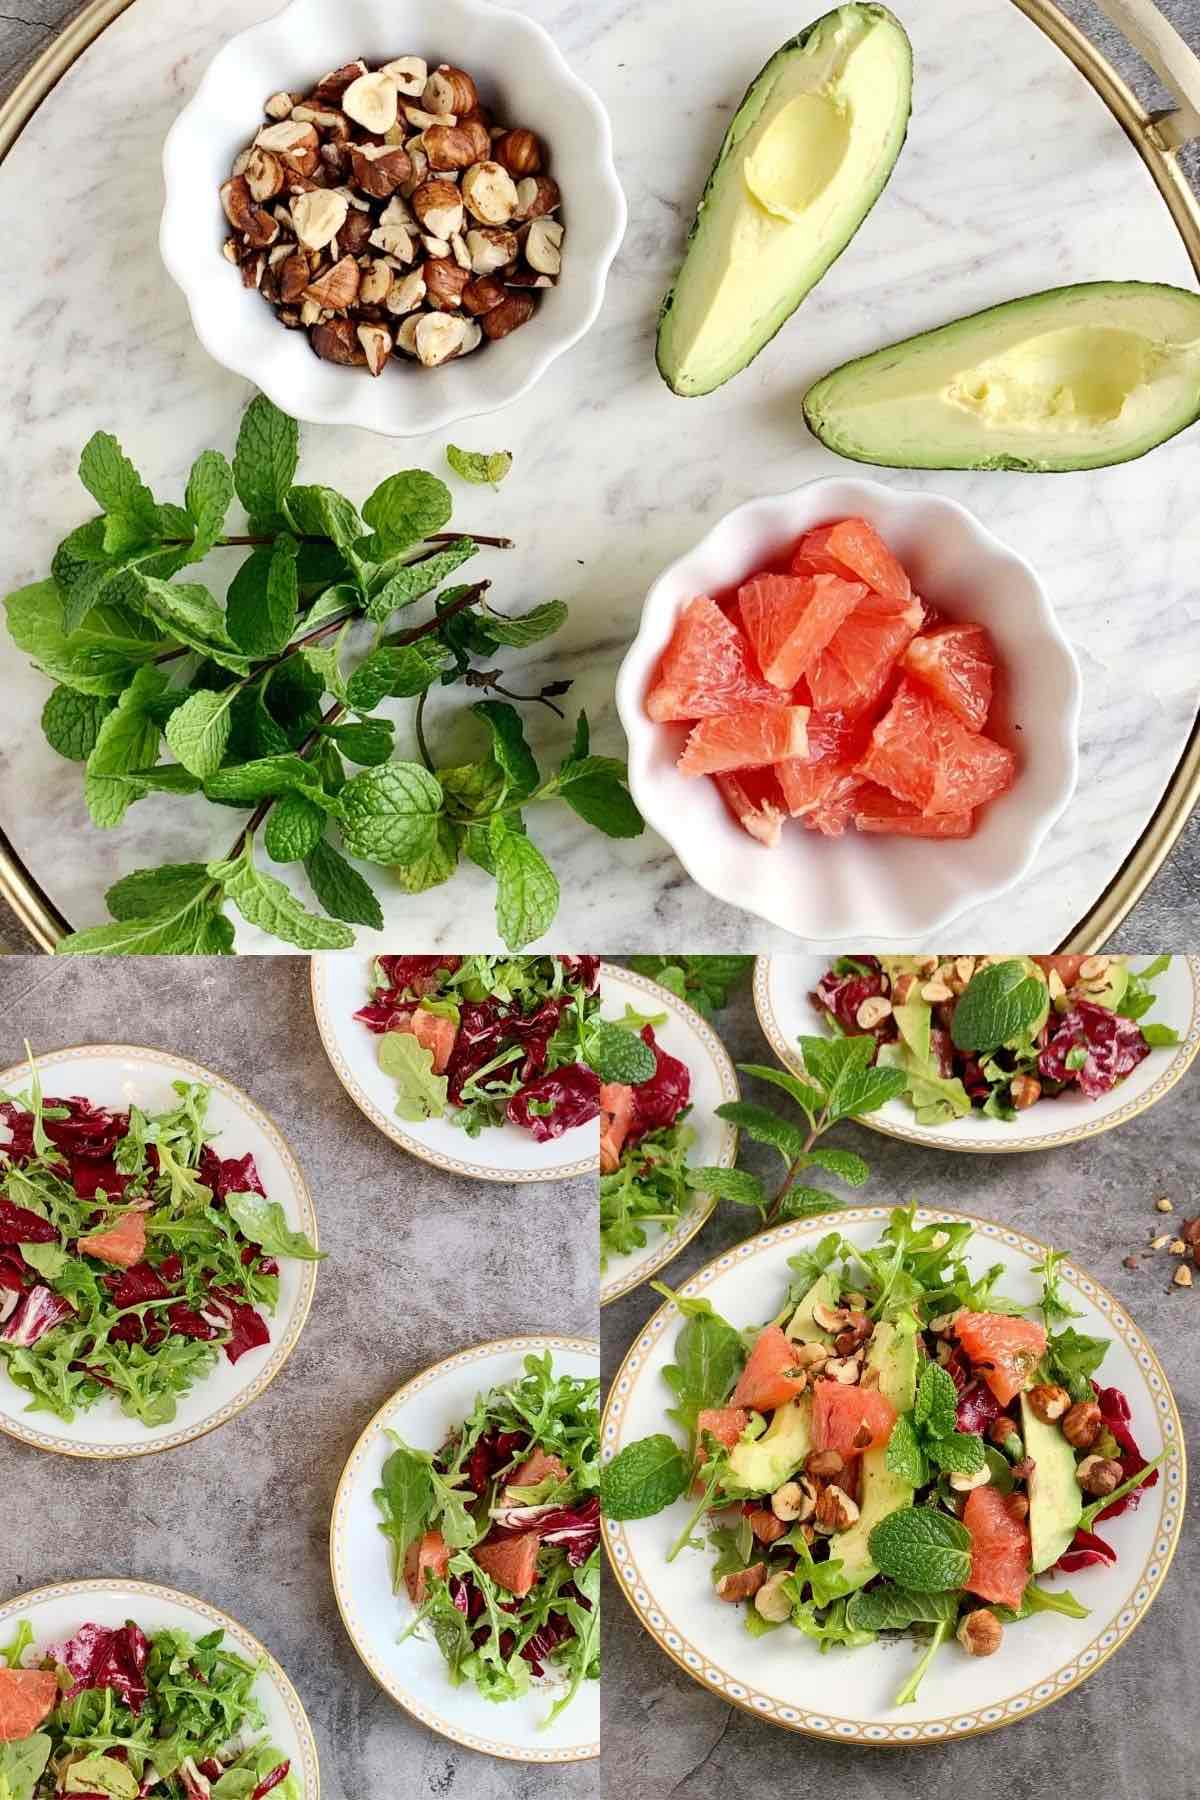 Photo collage with 3 photos showing how to assemble a salad with avocado, mint, hazelnuts, and honey mint dressing.